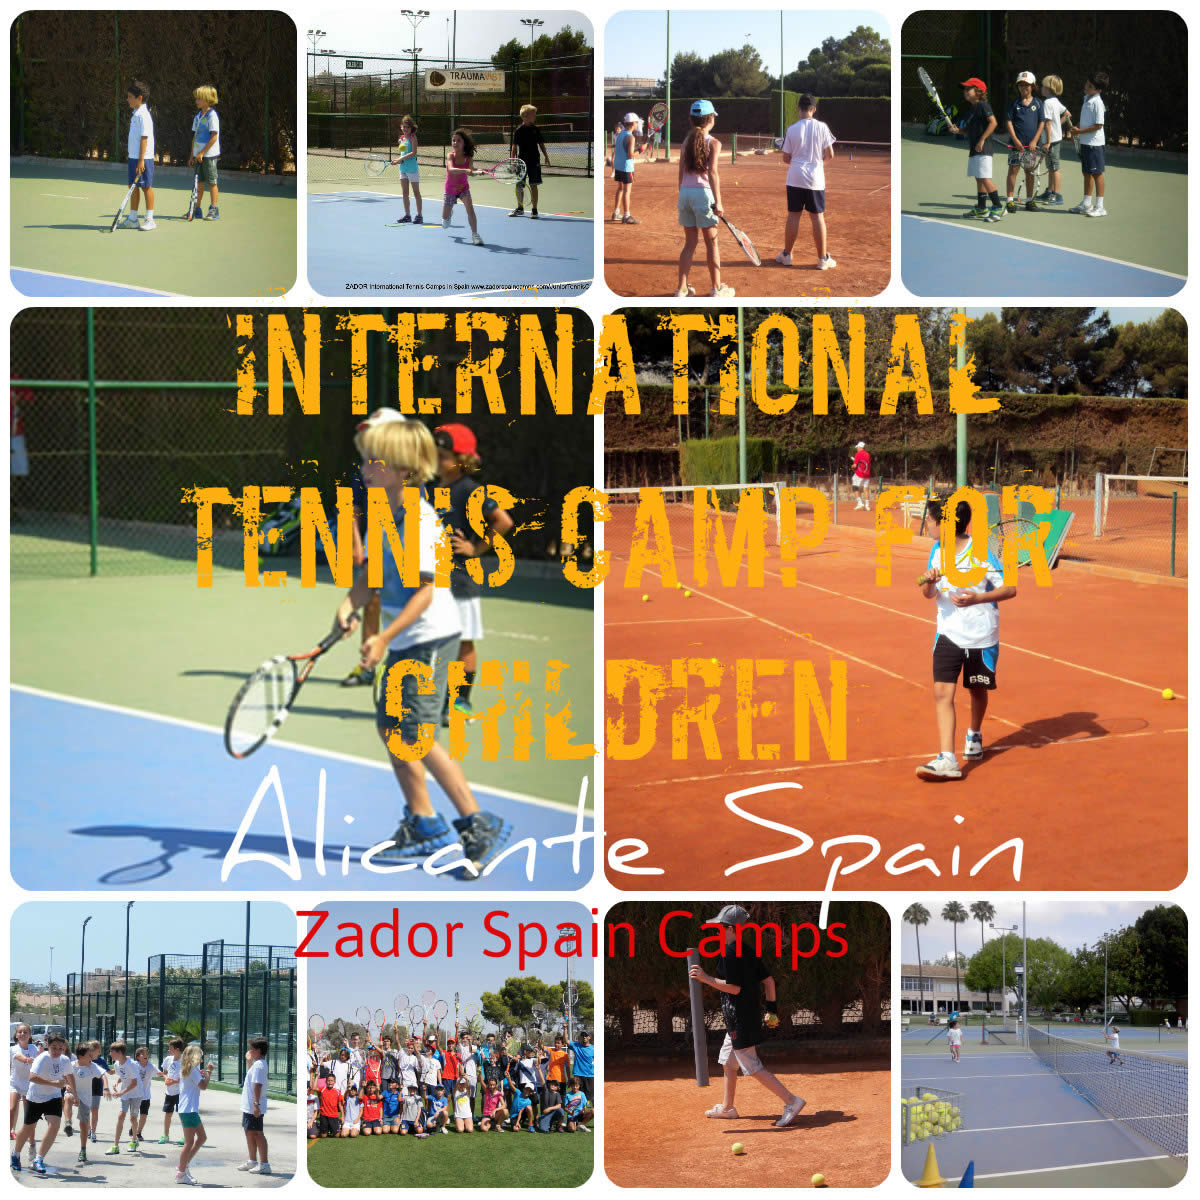 Tennis Camp for children Alicante Spain